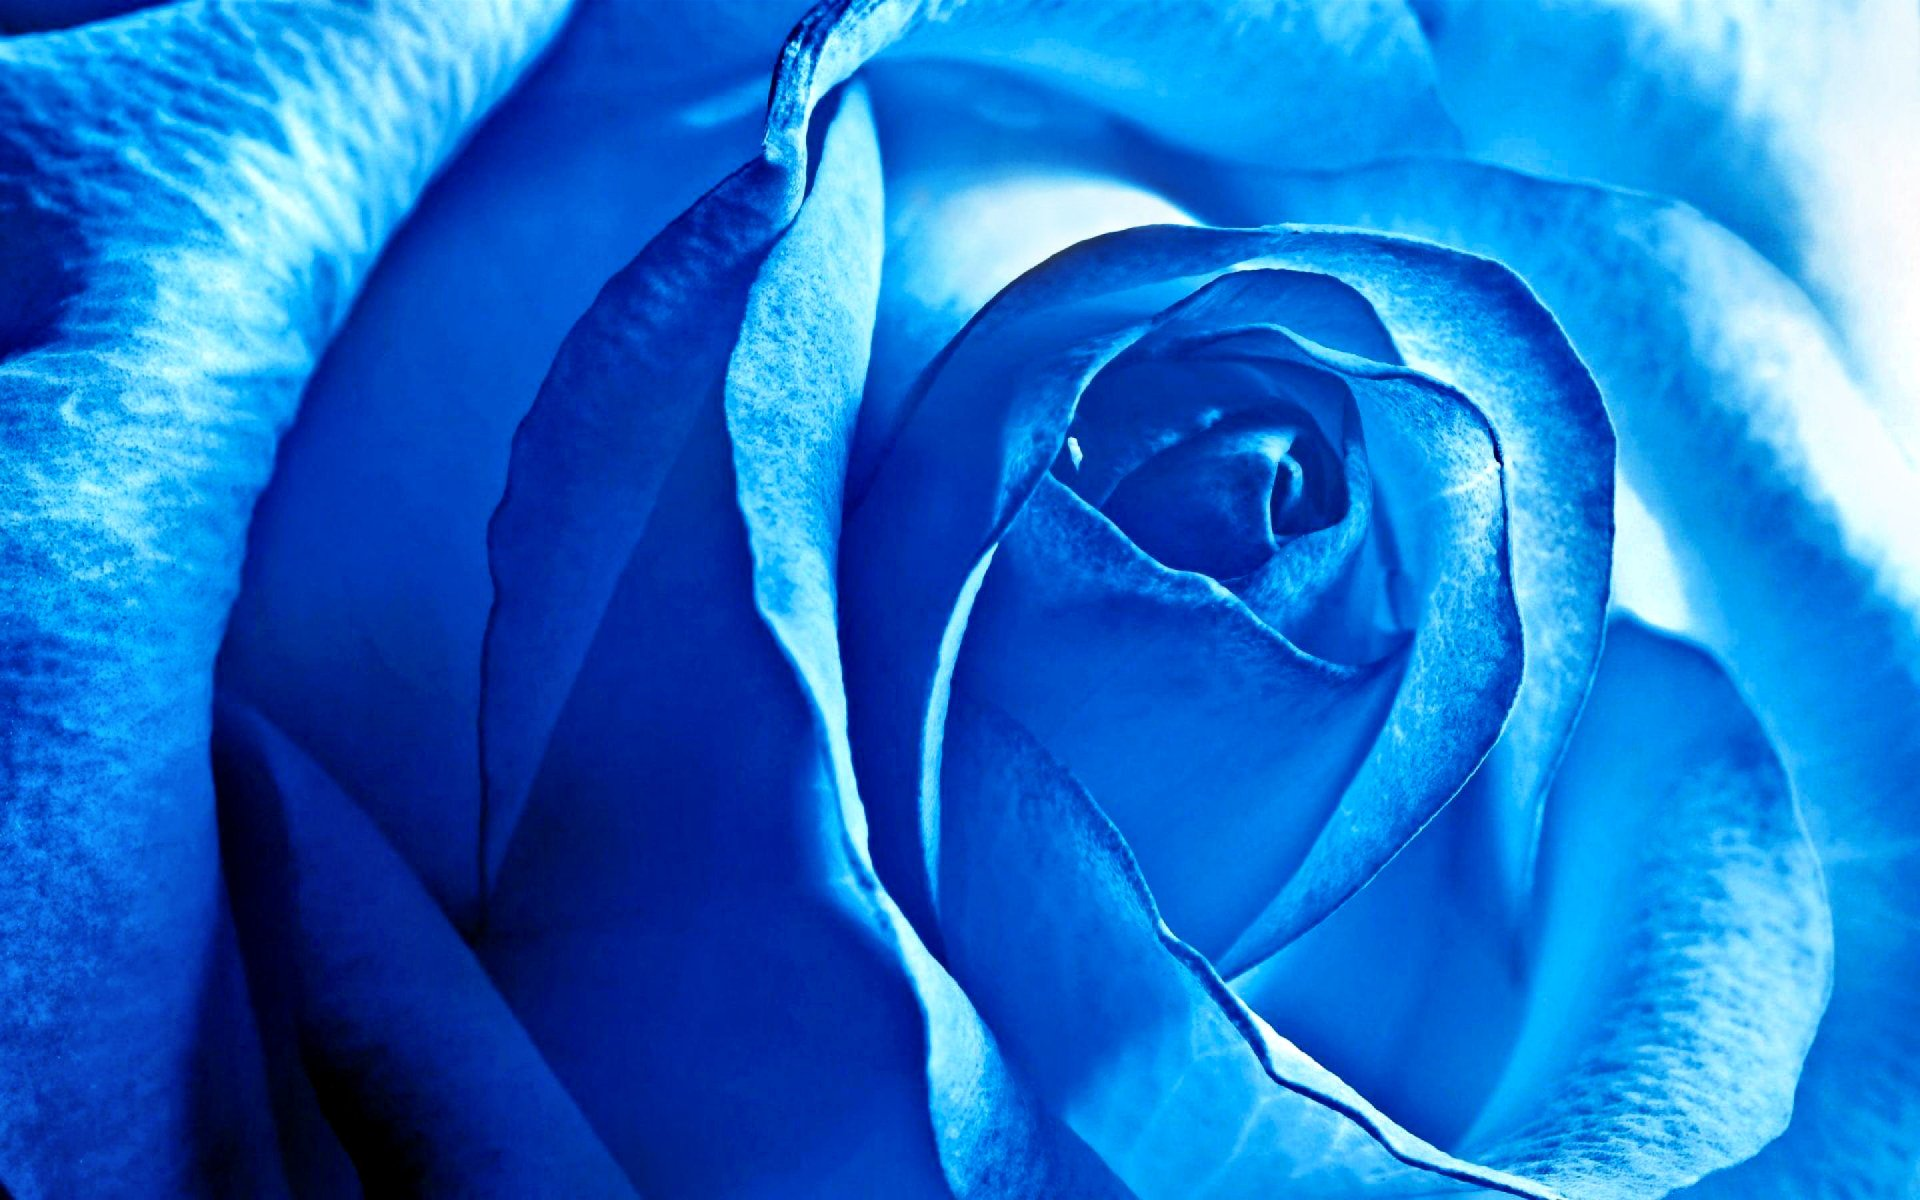 Earth - Rose  Flower Blue Nature Wallpaper